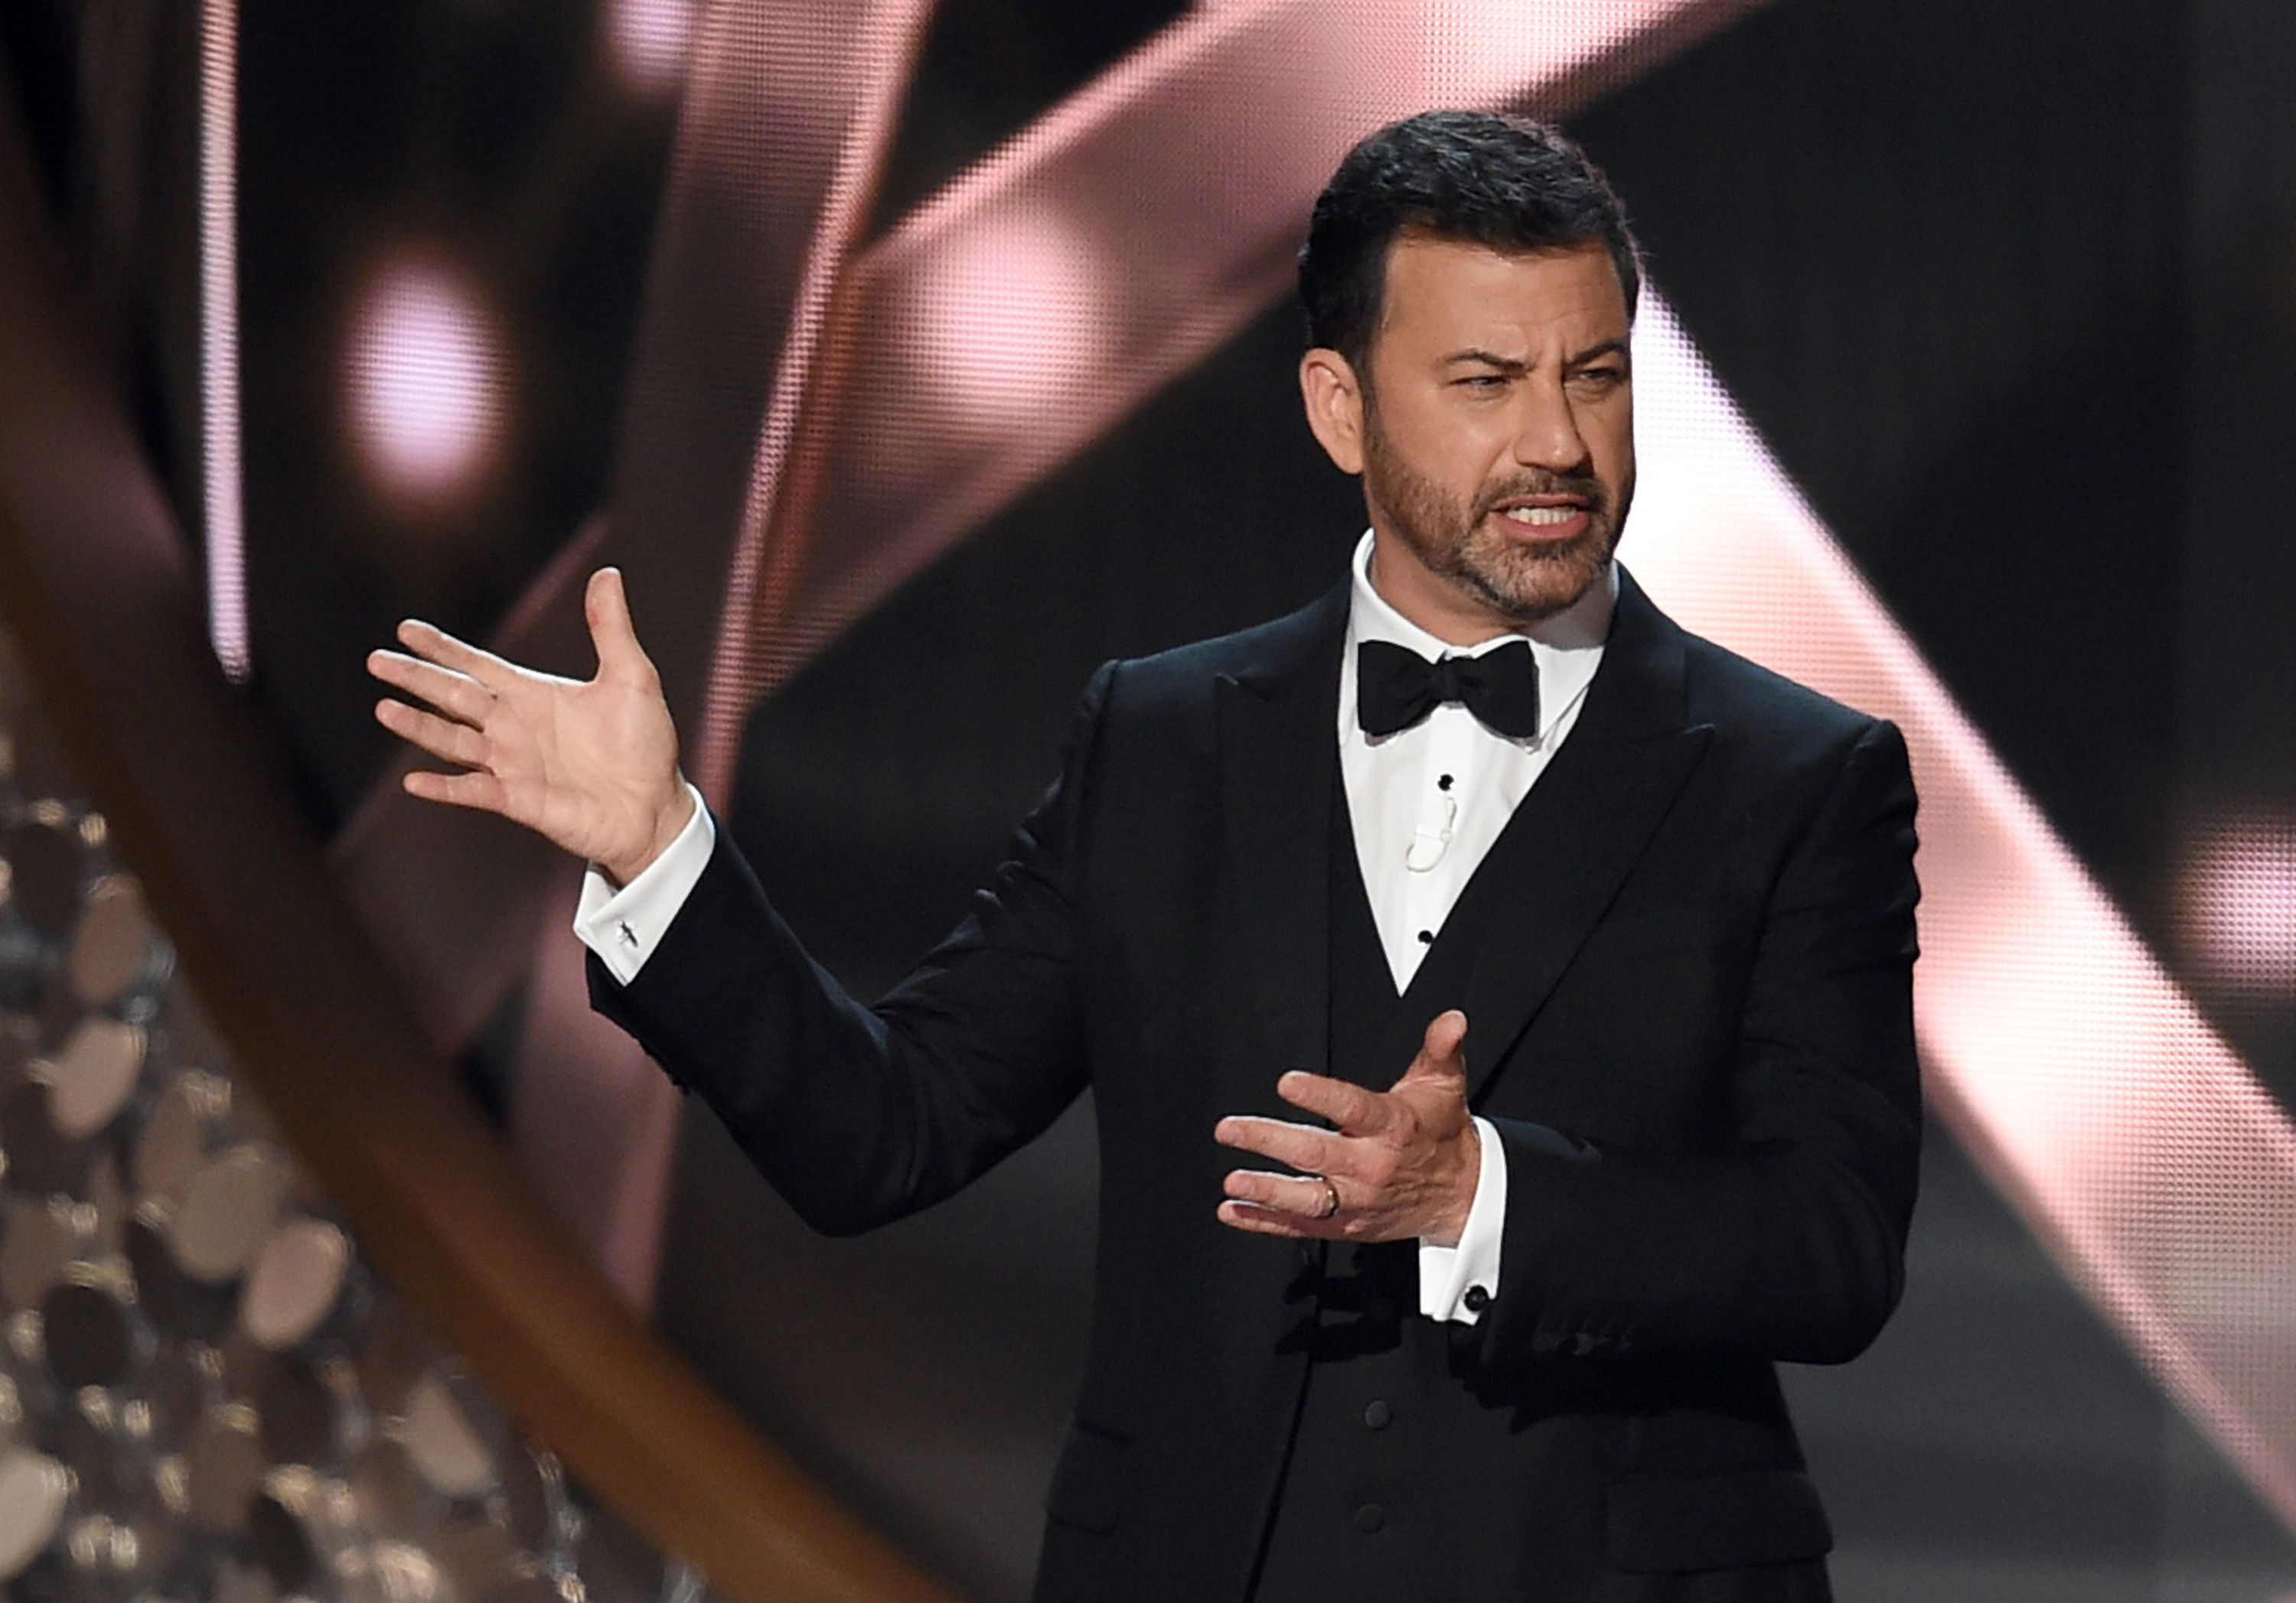 Jimmy Kimmel at the 68th Annual Primetime Emmy Awards in September 2016 in Los Angeles | Source: Getty Images